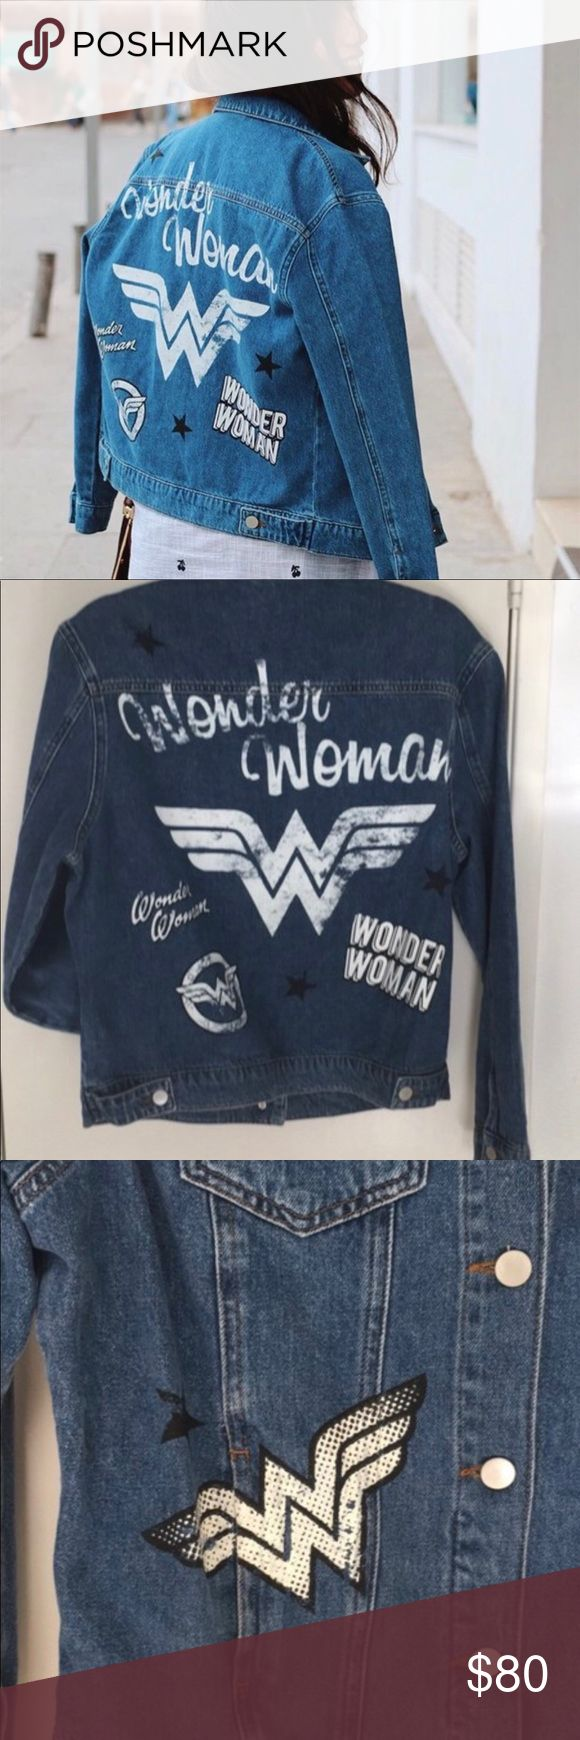 Wonder Woman denim jacket NWT Primark Wonder Woman rare denim jean jacket, new with tags   MEDIUM primark Jackets & Coats Jean Jackets